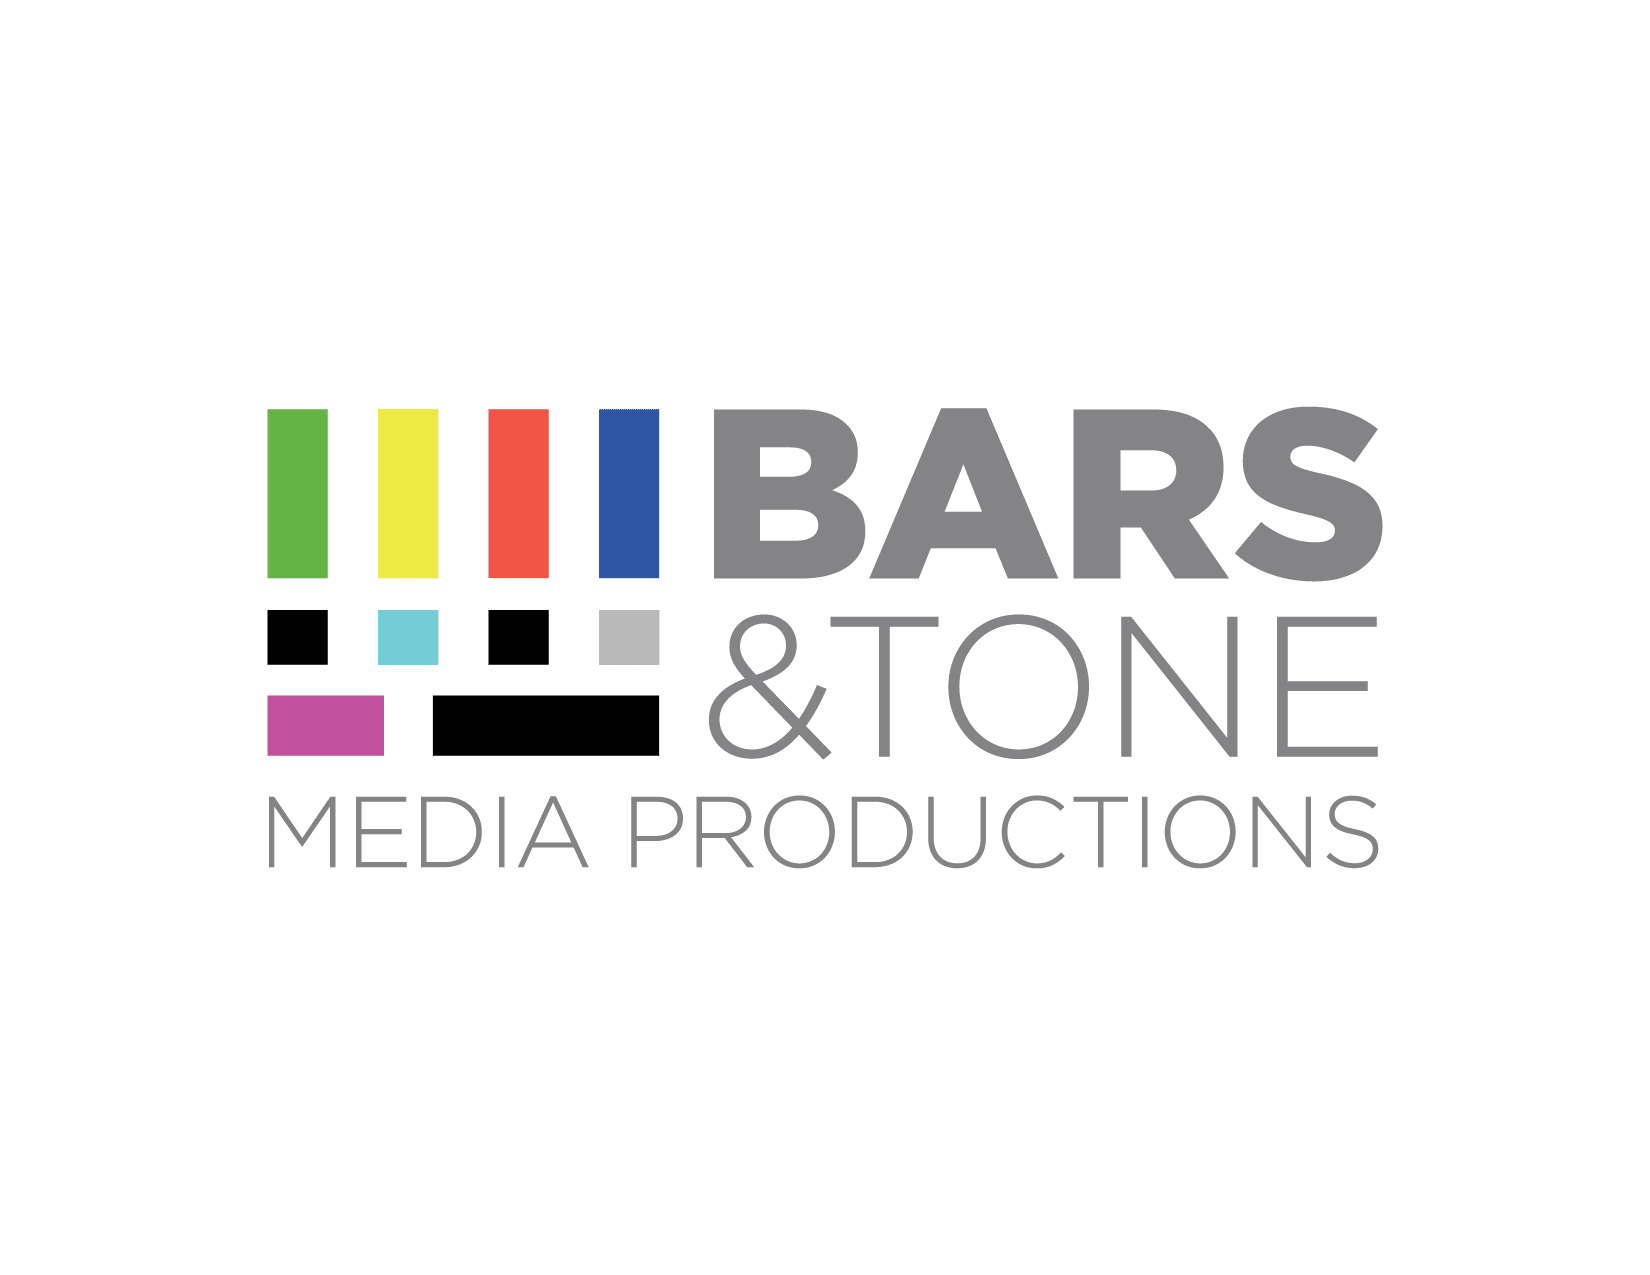 Bars & Tone Media Productions, Inc